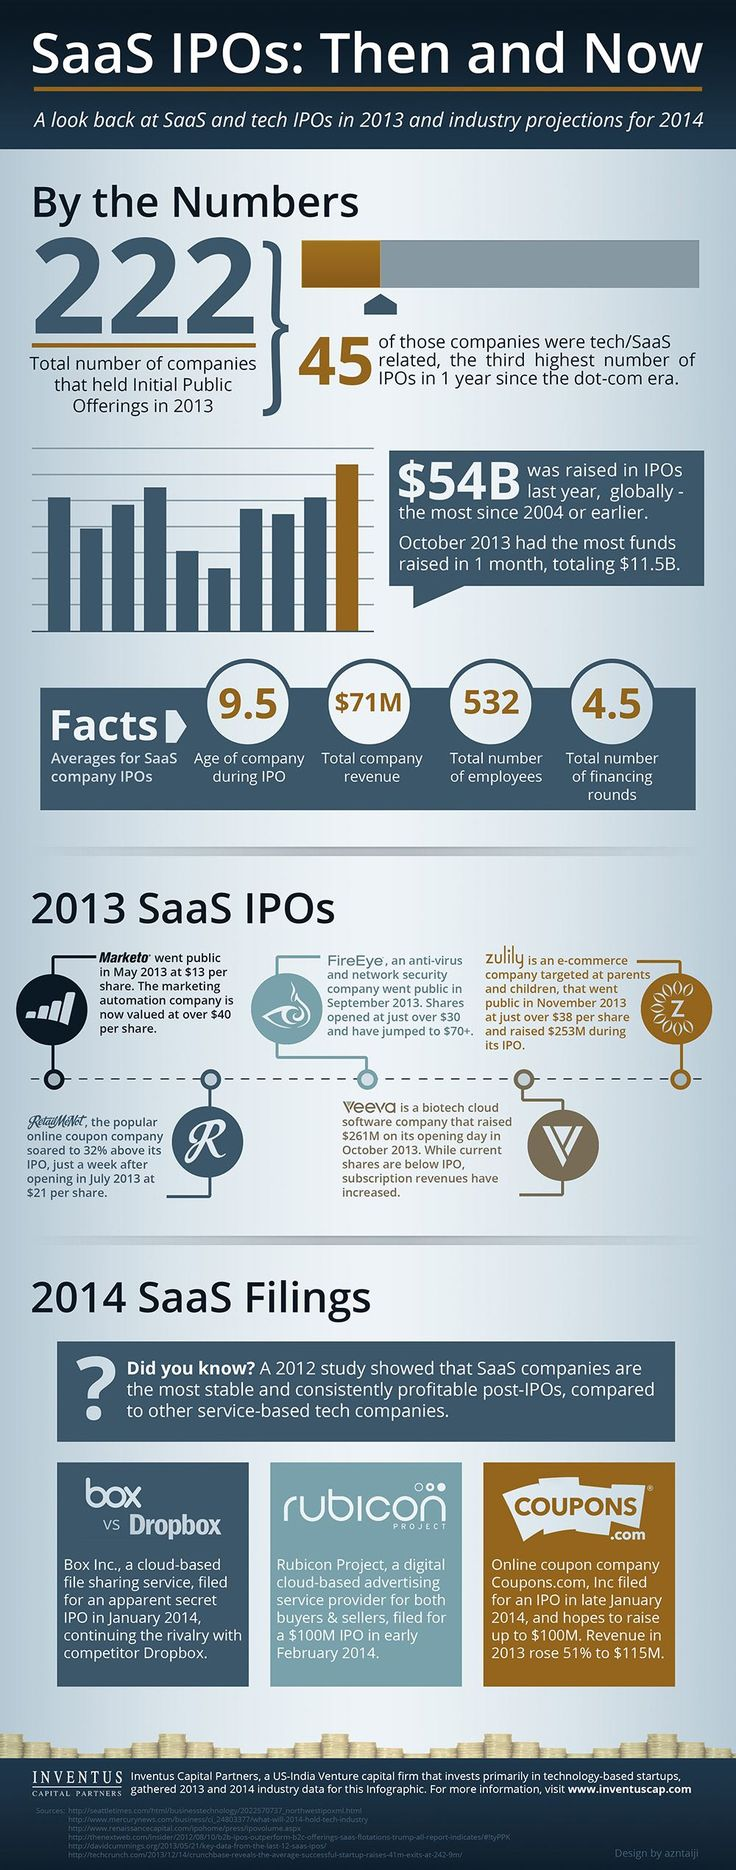 Cloud-Based Tech Companies Are Hot IPO Candidates (Infographic) #cloud #computing,technology,apps,ipo,software #as #a #service,ipos,infographics http://oregon.remmont.com/cloud-based-tech-companies-are-hot-ipo-candidates-infographic-cloud-computingtechnologyappsiposoftware-as-a-serviceiposinfographics/  # Cloud-Based Tech Companies Are Hot IPO Candidates (Infographic) February 20, 2014 The cloud is raining money these days. Approximately one in five companies that went public in the U.S. in…